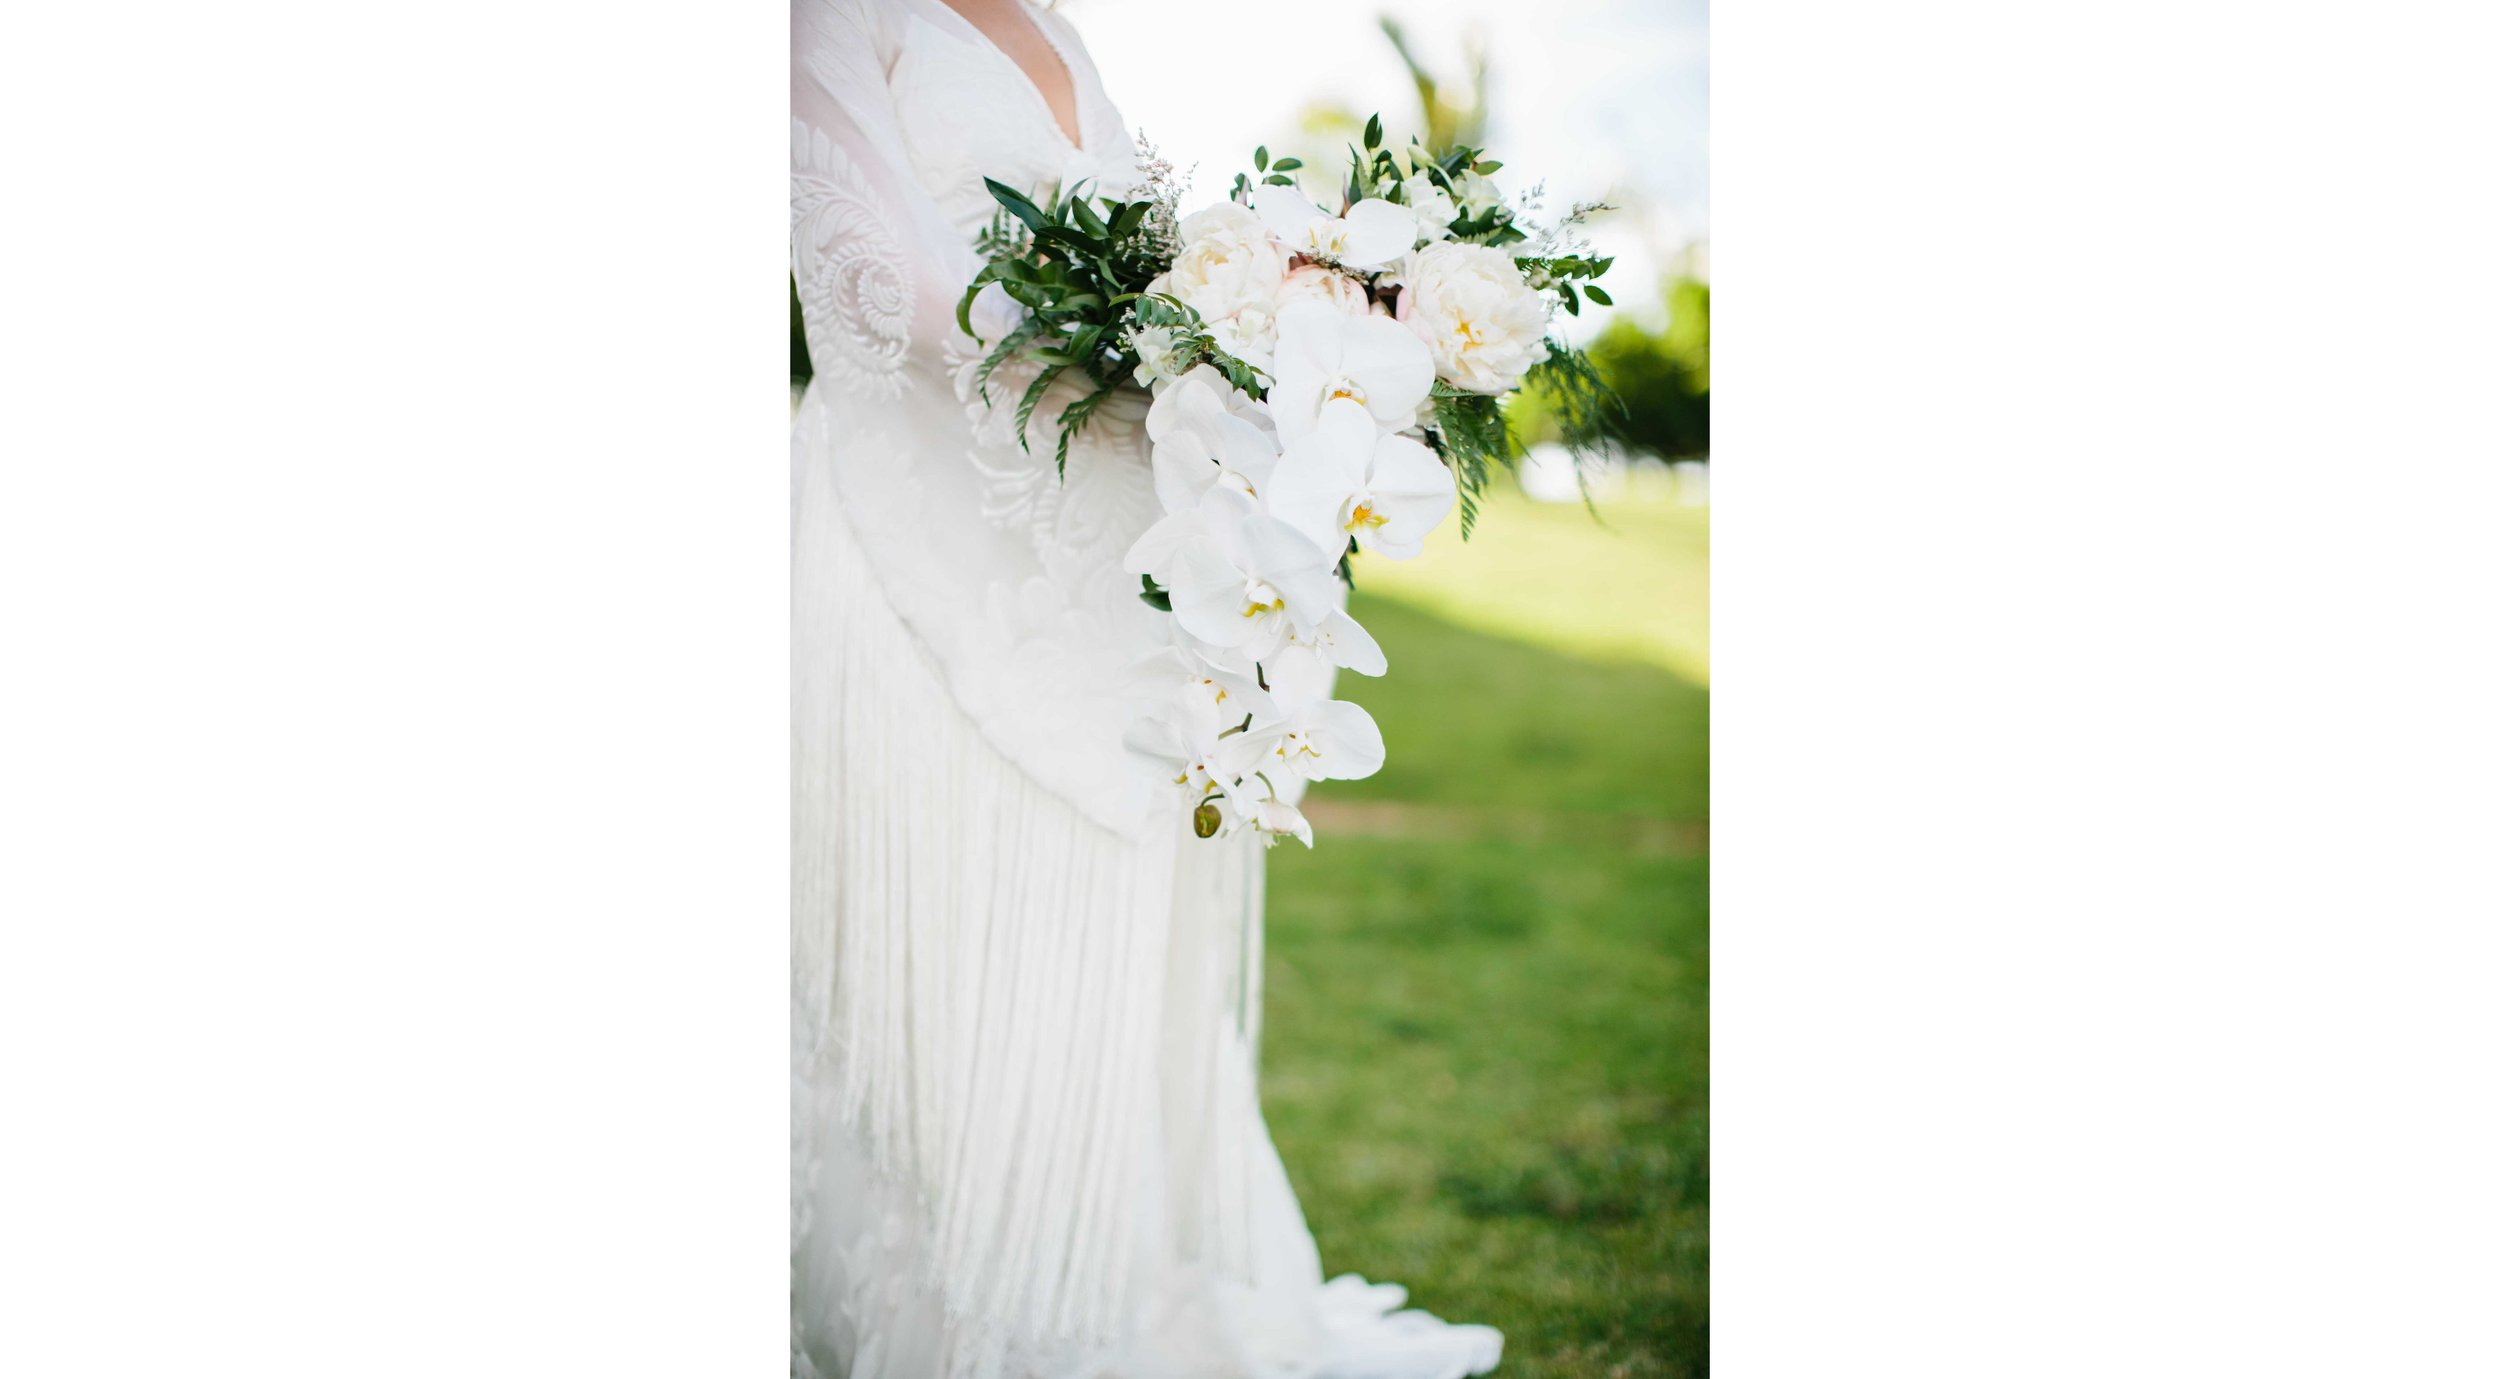 Bridal Bouquet of White Orchids and Greenery